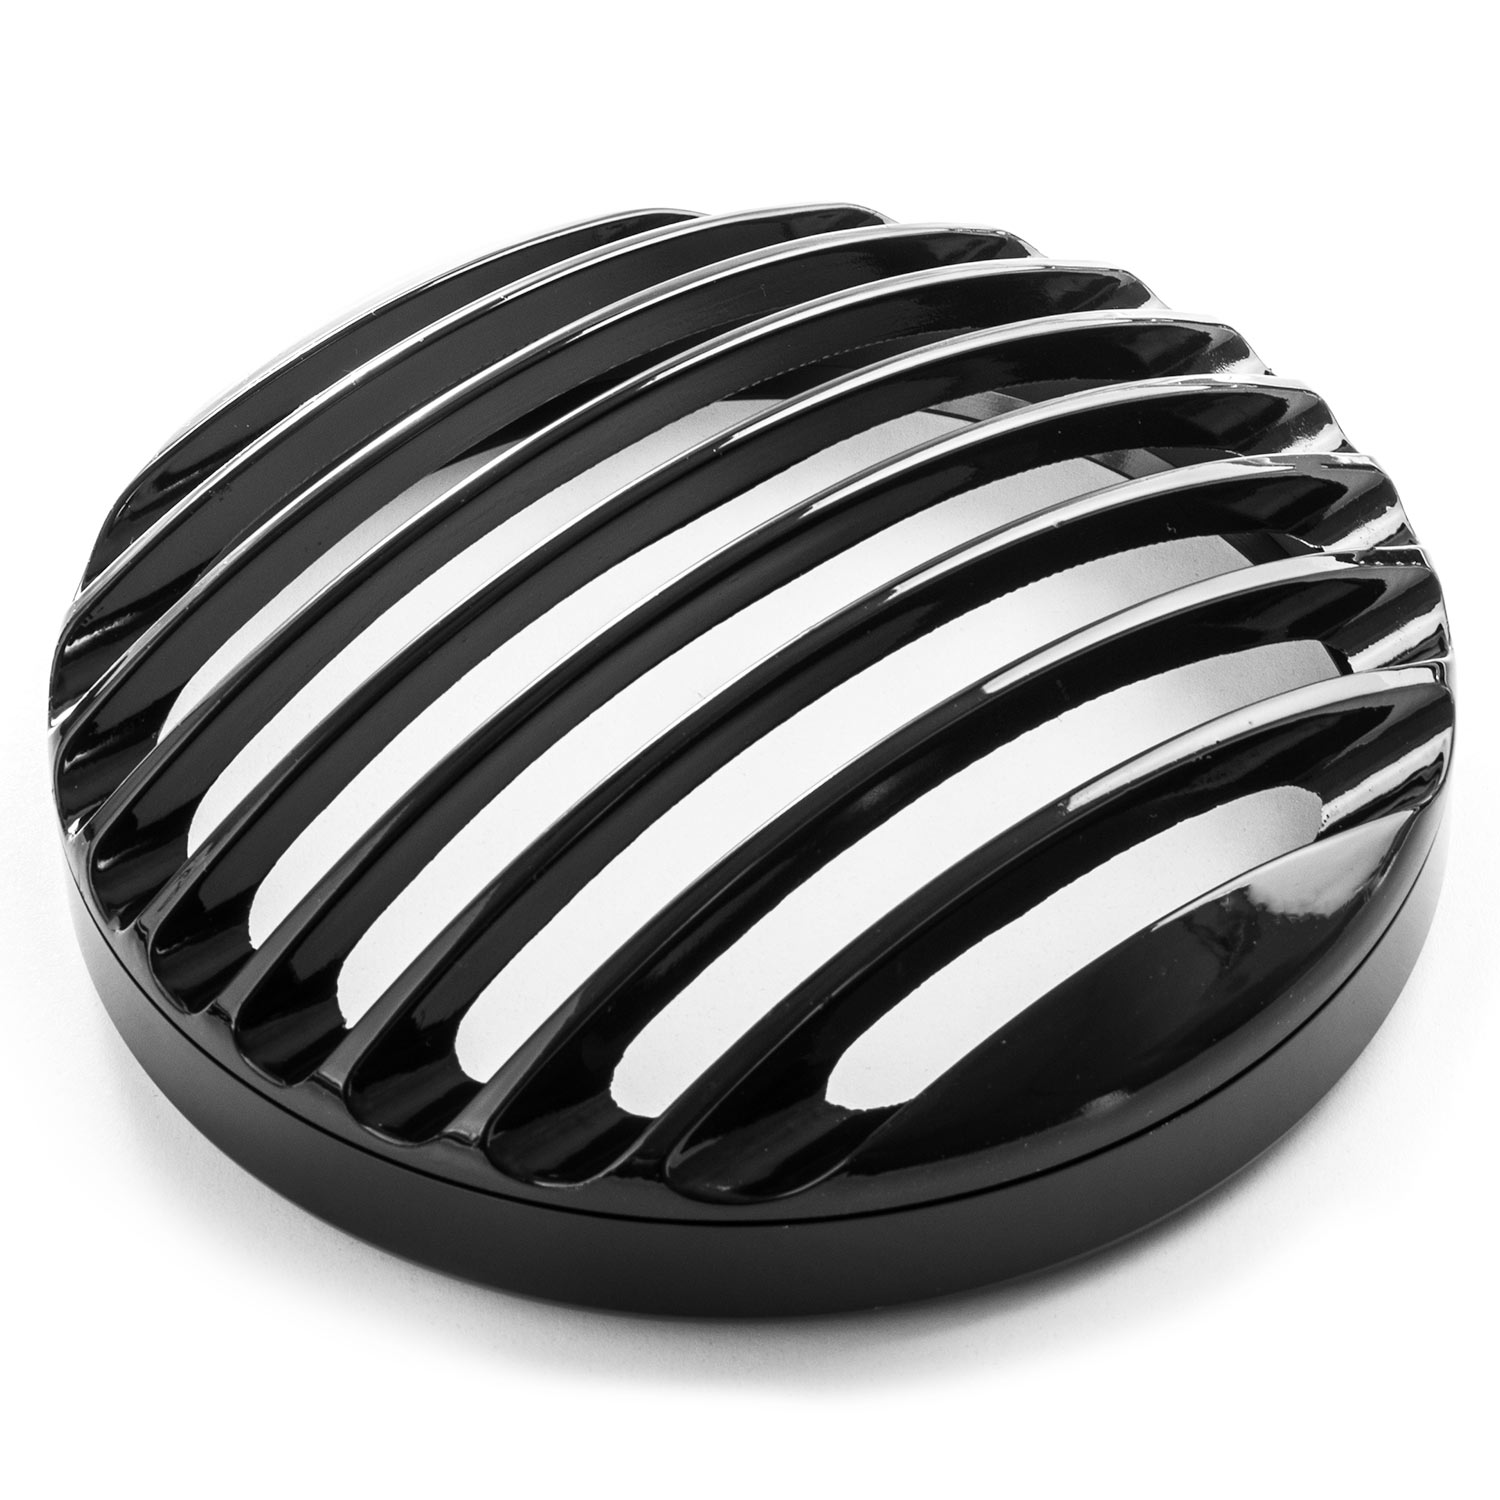 "5 3/4"" Headlight Light Grill Cover for Harley Sportster XL 883 1200 2004-2017 for Harley Davidson Sportster 883R XL883R 2005-2007 - image 6 of 6"